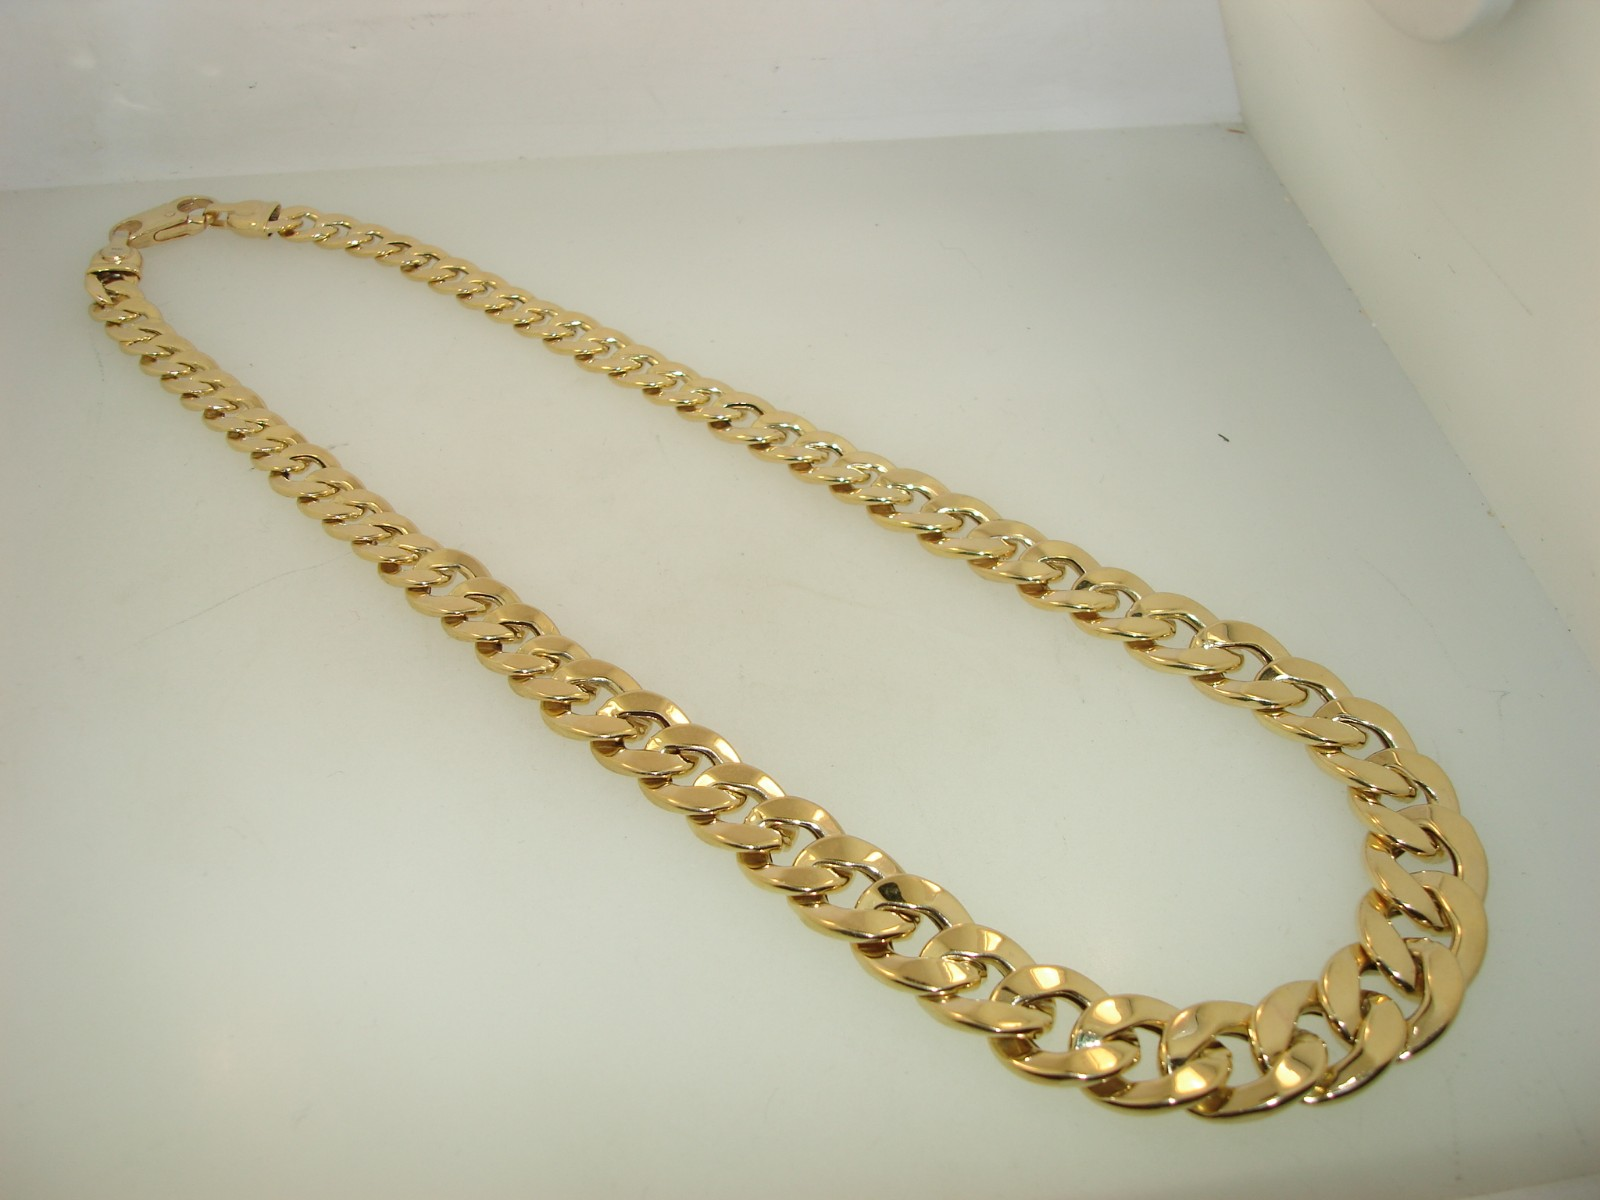 Italy 14k Gold Graduated Curb Link Necklace 17 1 4